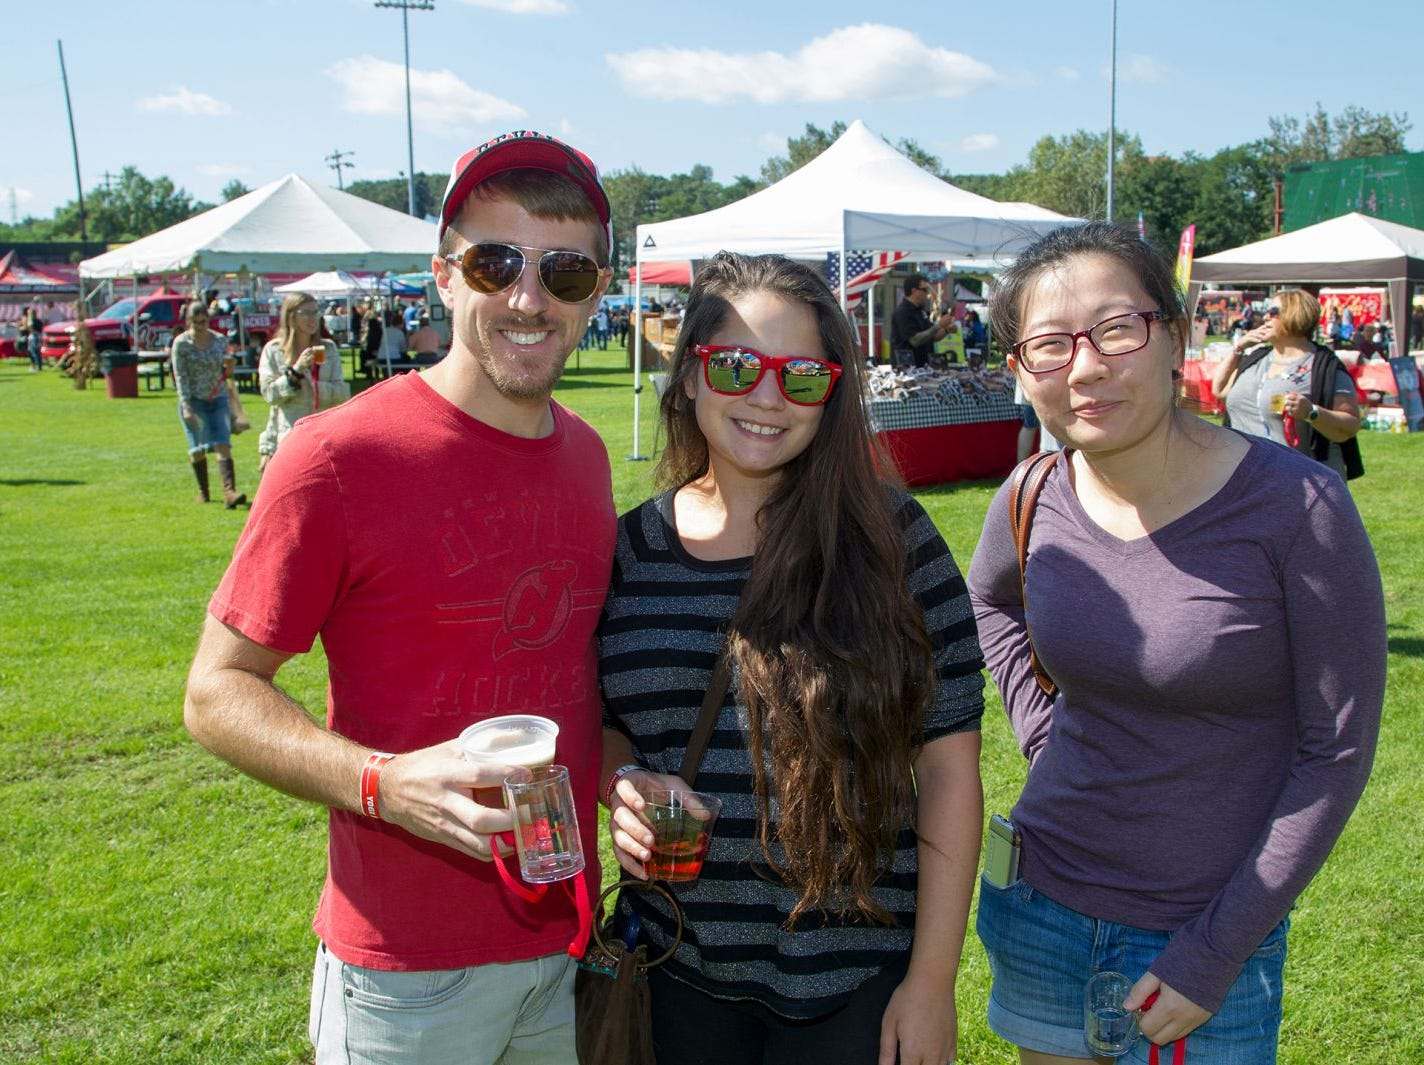 Jim Stys, Emily Gucciaro, Erica Hsu. The second annual Food Truck & Craft Beer Festival at Yogi Berra Stadium in Little Falls. 09/29/2018